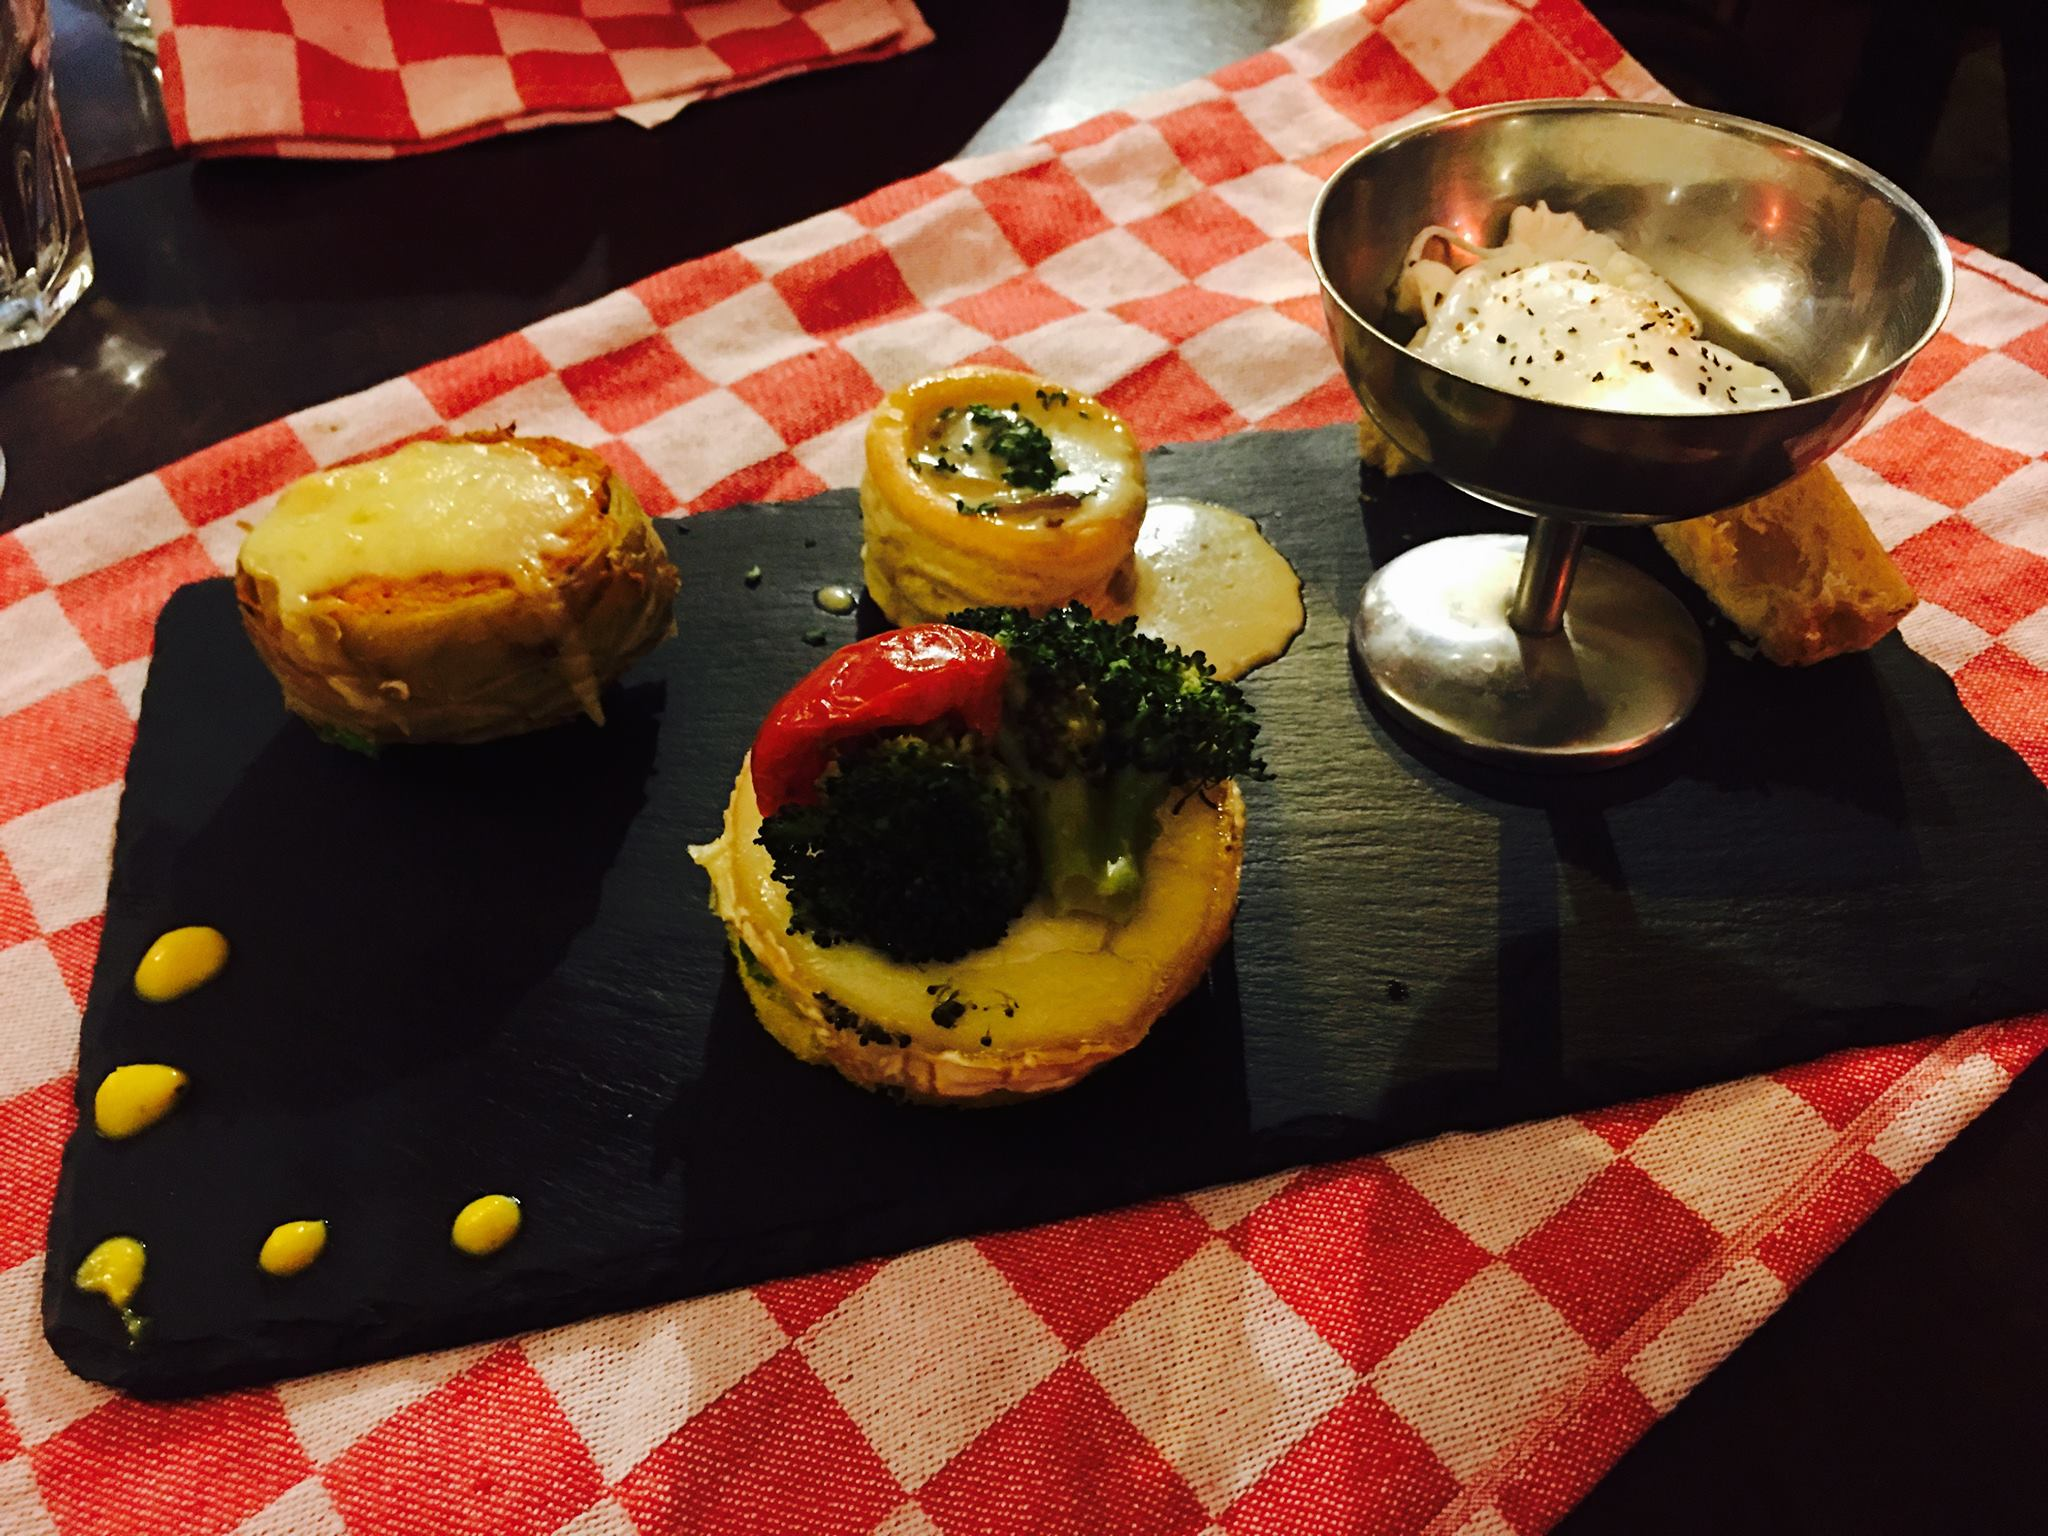 Vegetarian quatuor on a slate